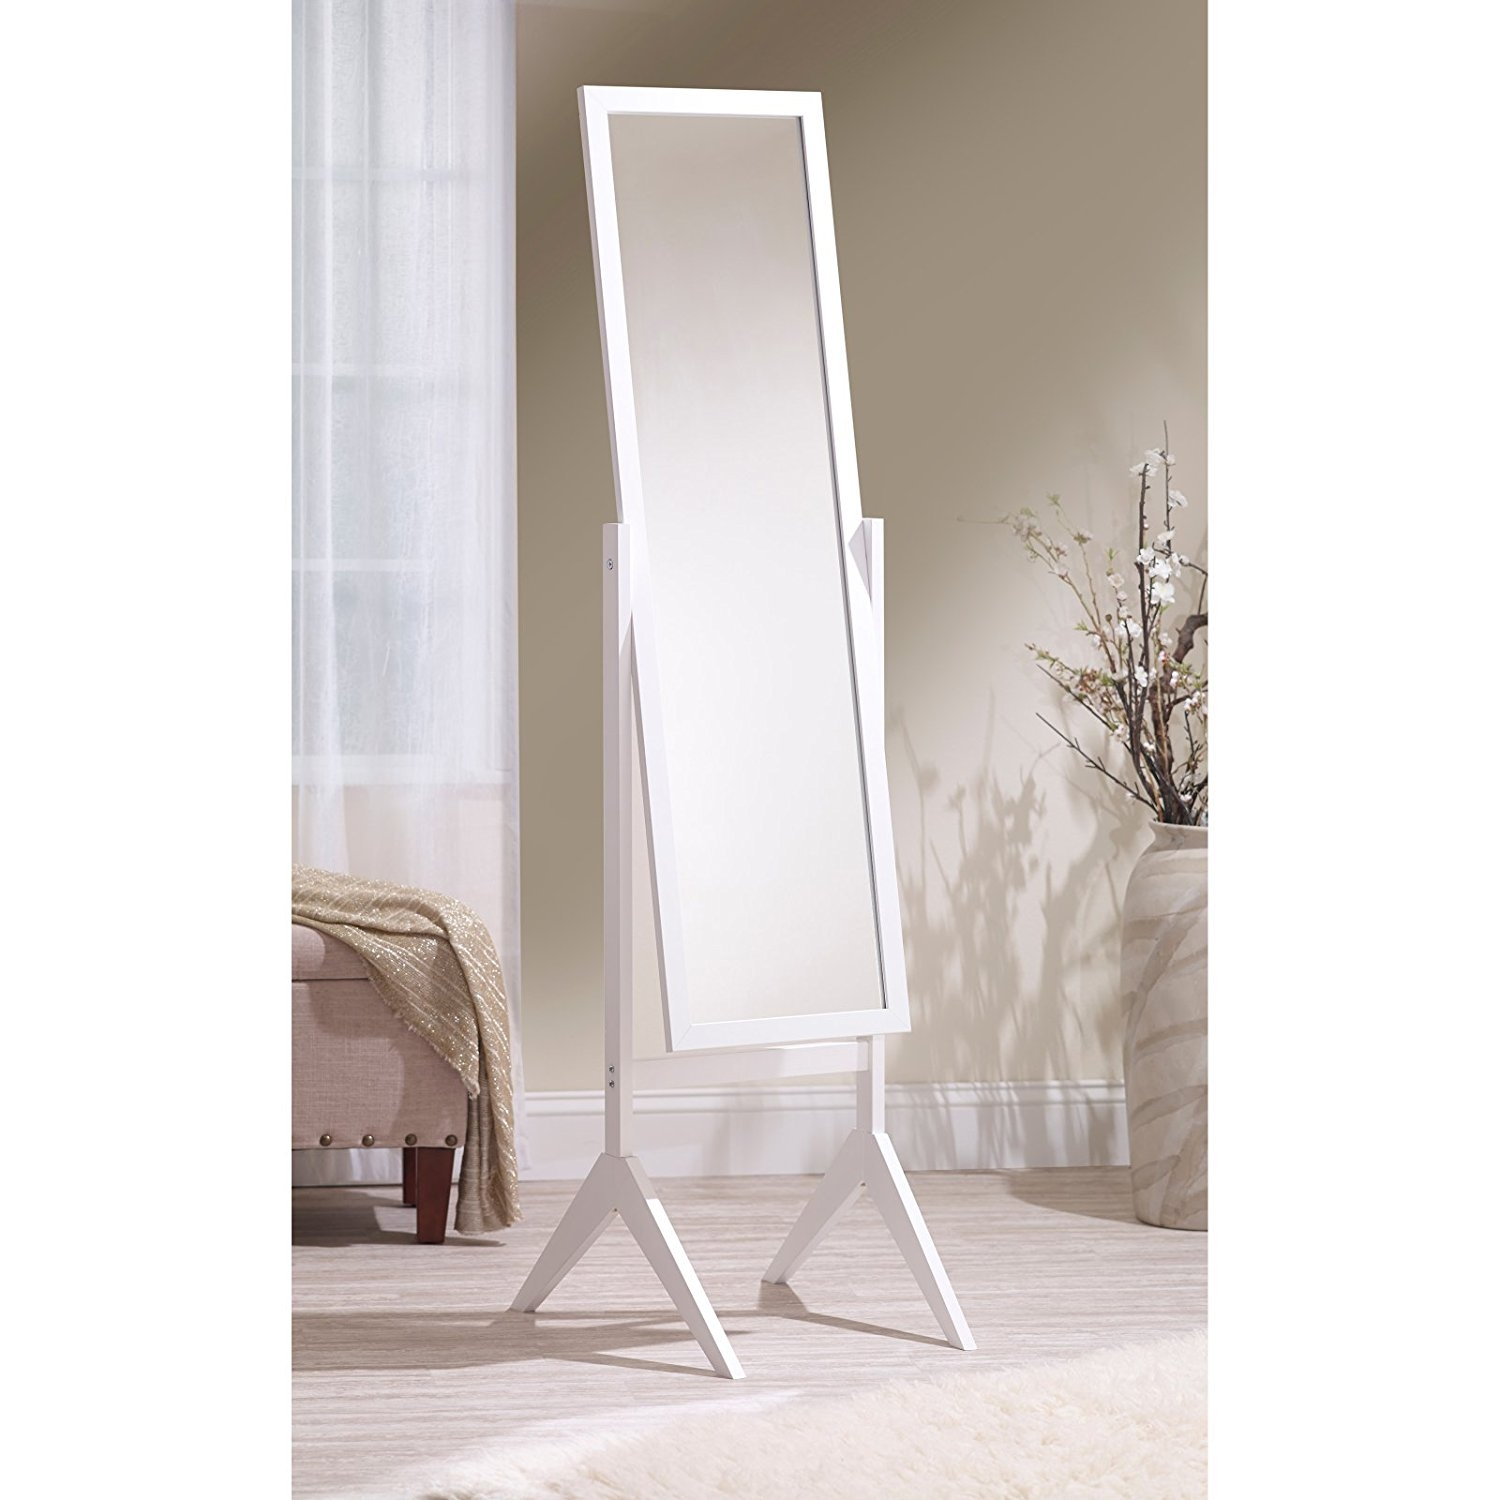 Amazon Mirrotek Adjustable Free Standing Tilt Full Length With Regard To Cheval Freestanding Mirror (Image 3 of 15)